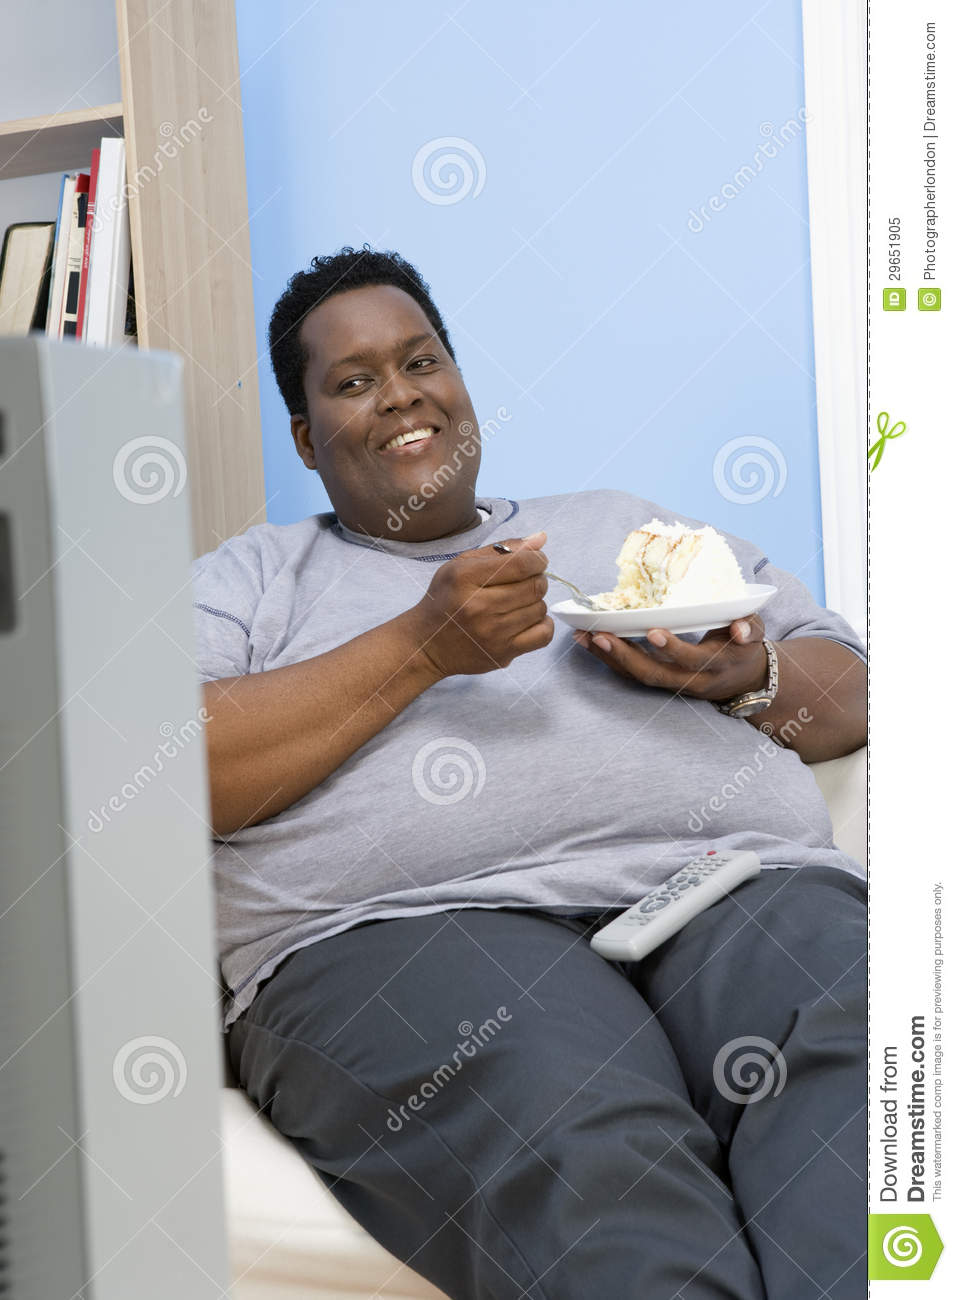 3 Person Couch Obese Man Eating Pastry Royalty Free Stock Photo - Image